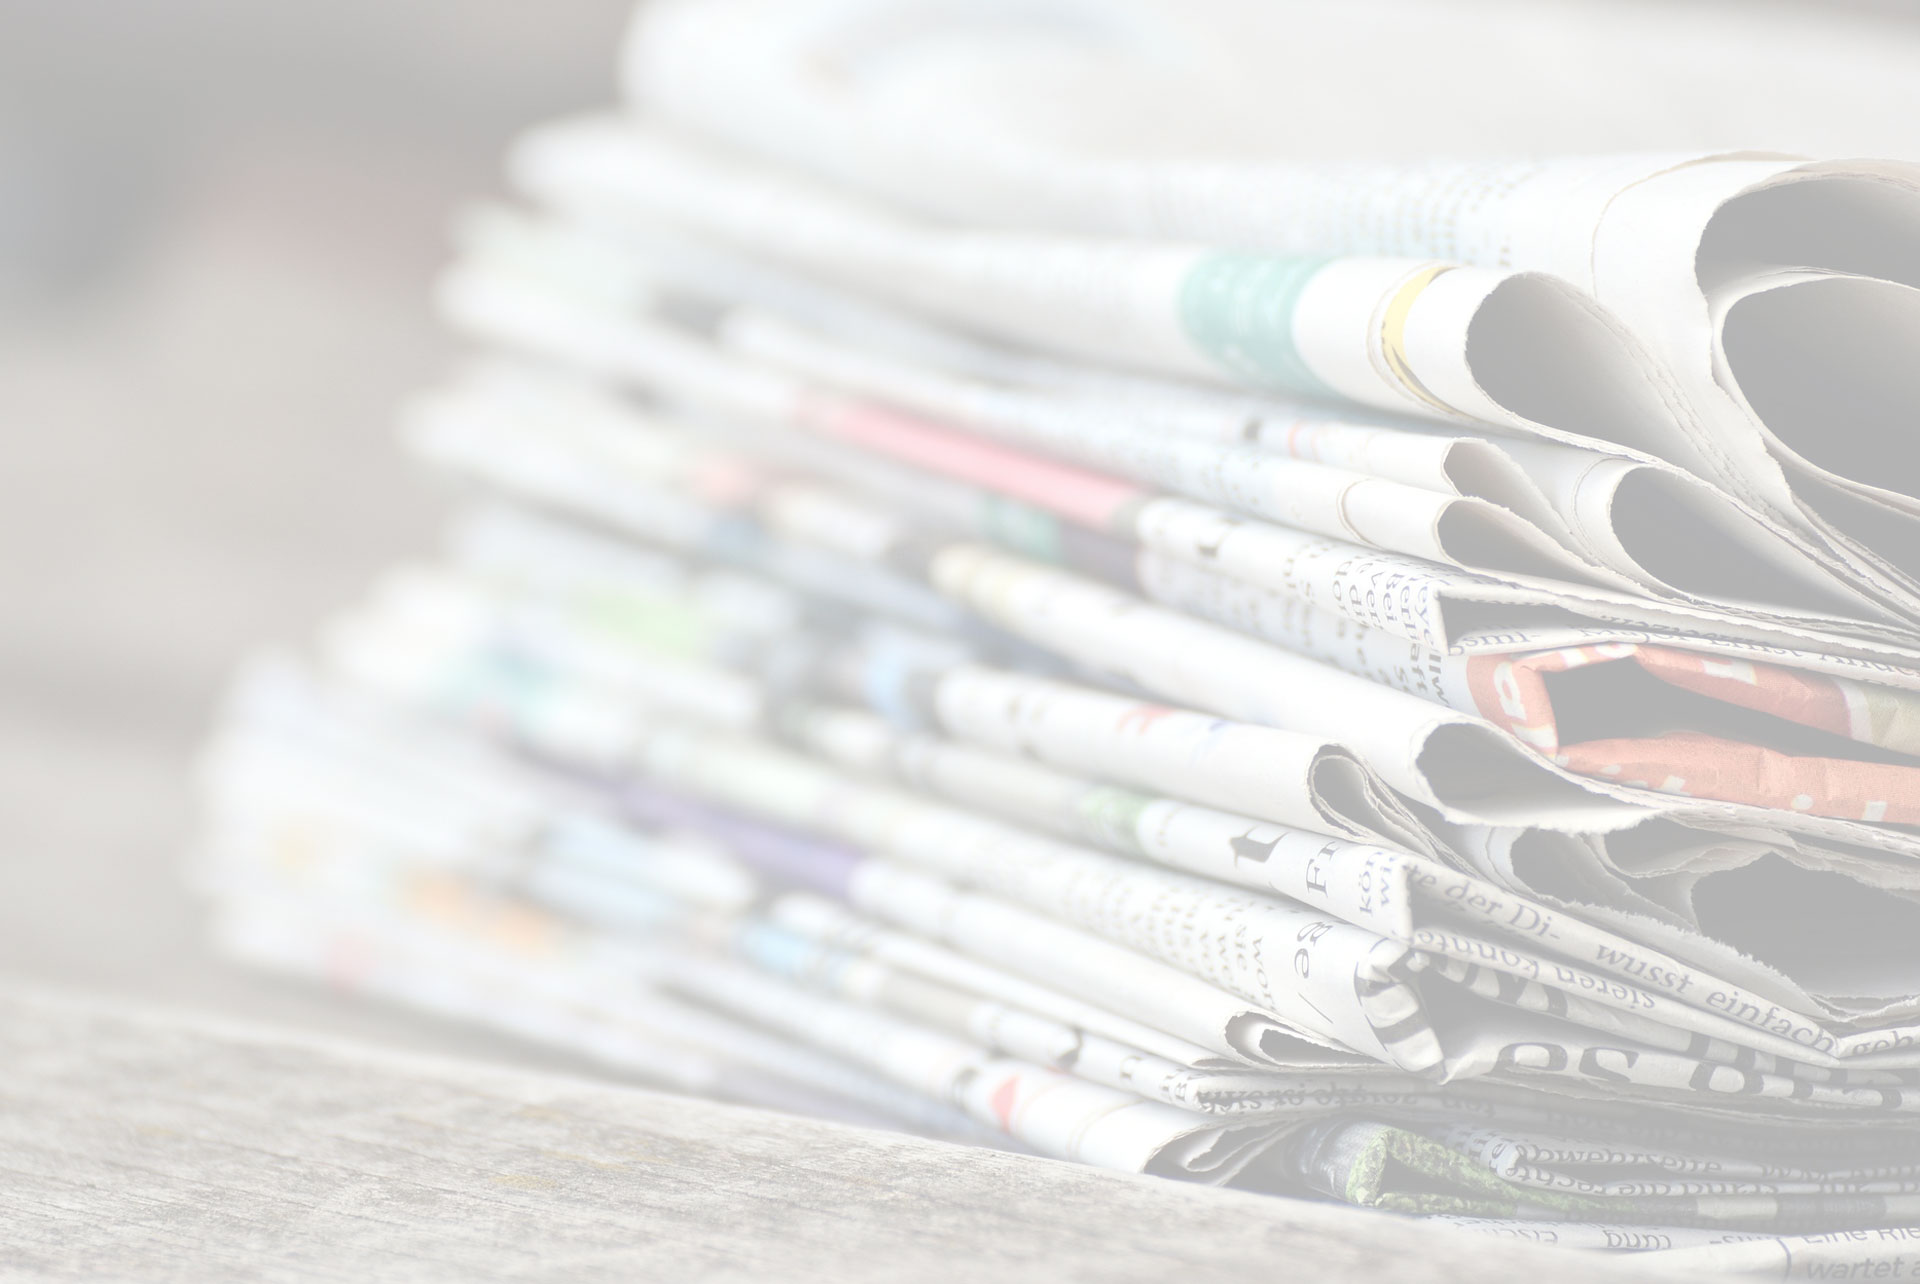 Golden Globe 2020, svelate le nomination